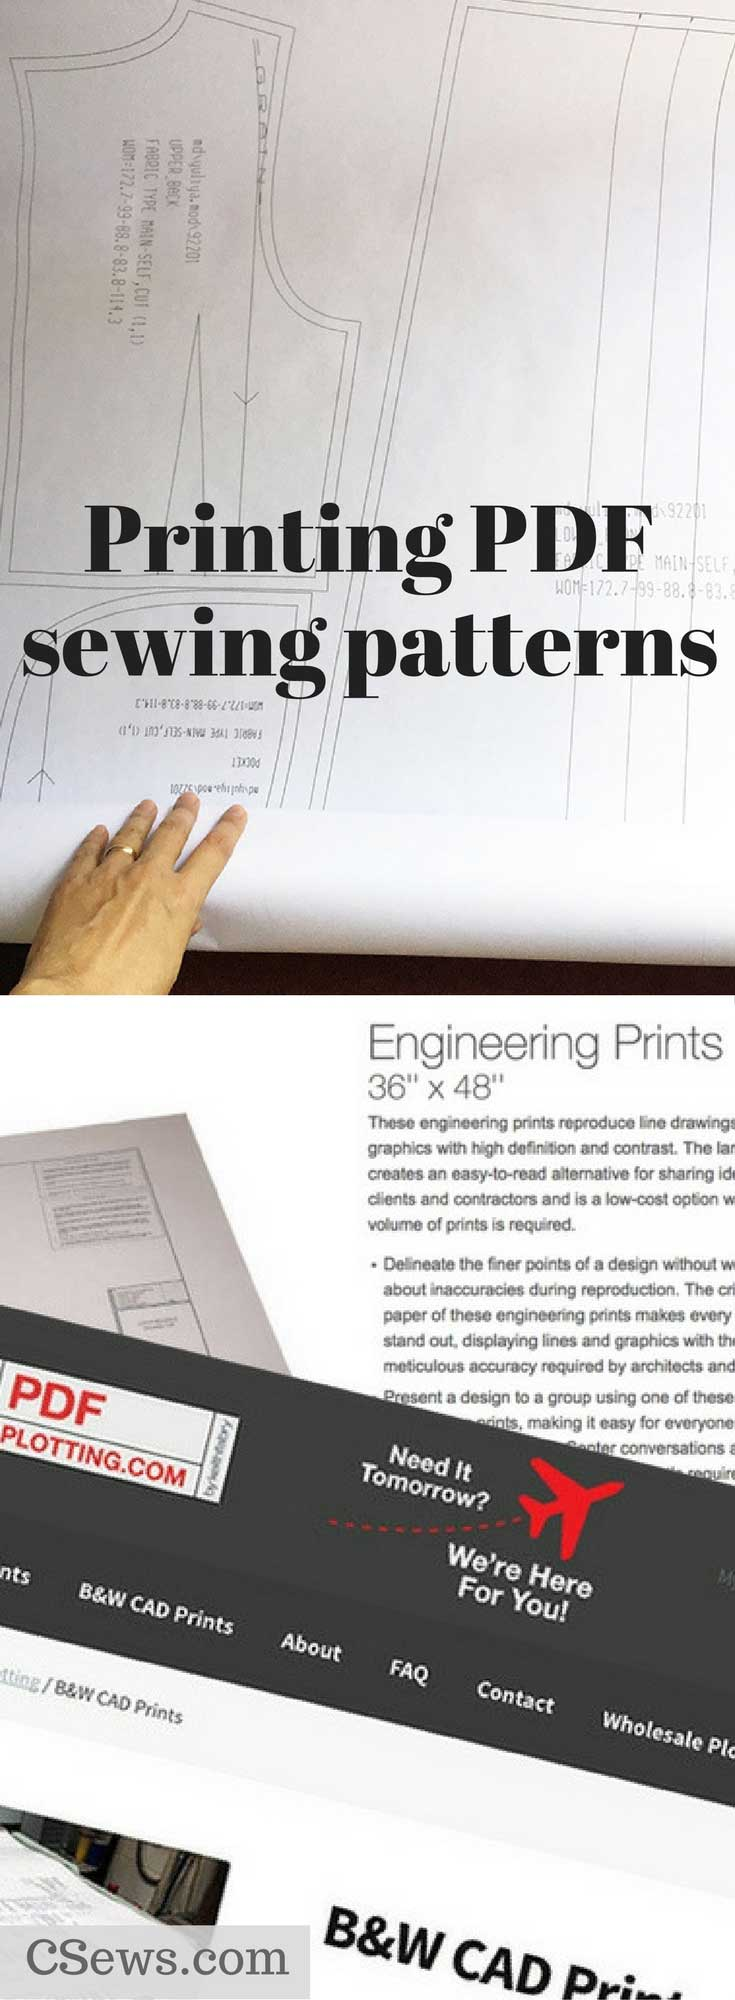 printing pdf patterns what are your options c sews